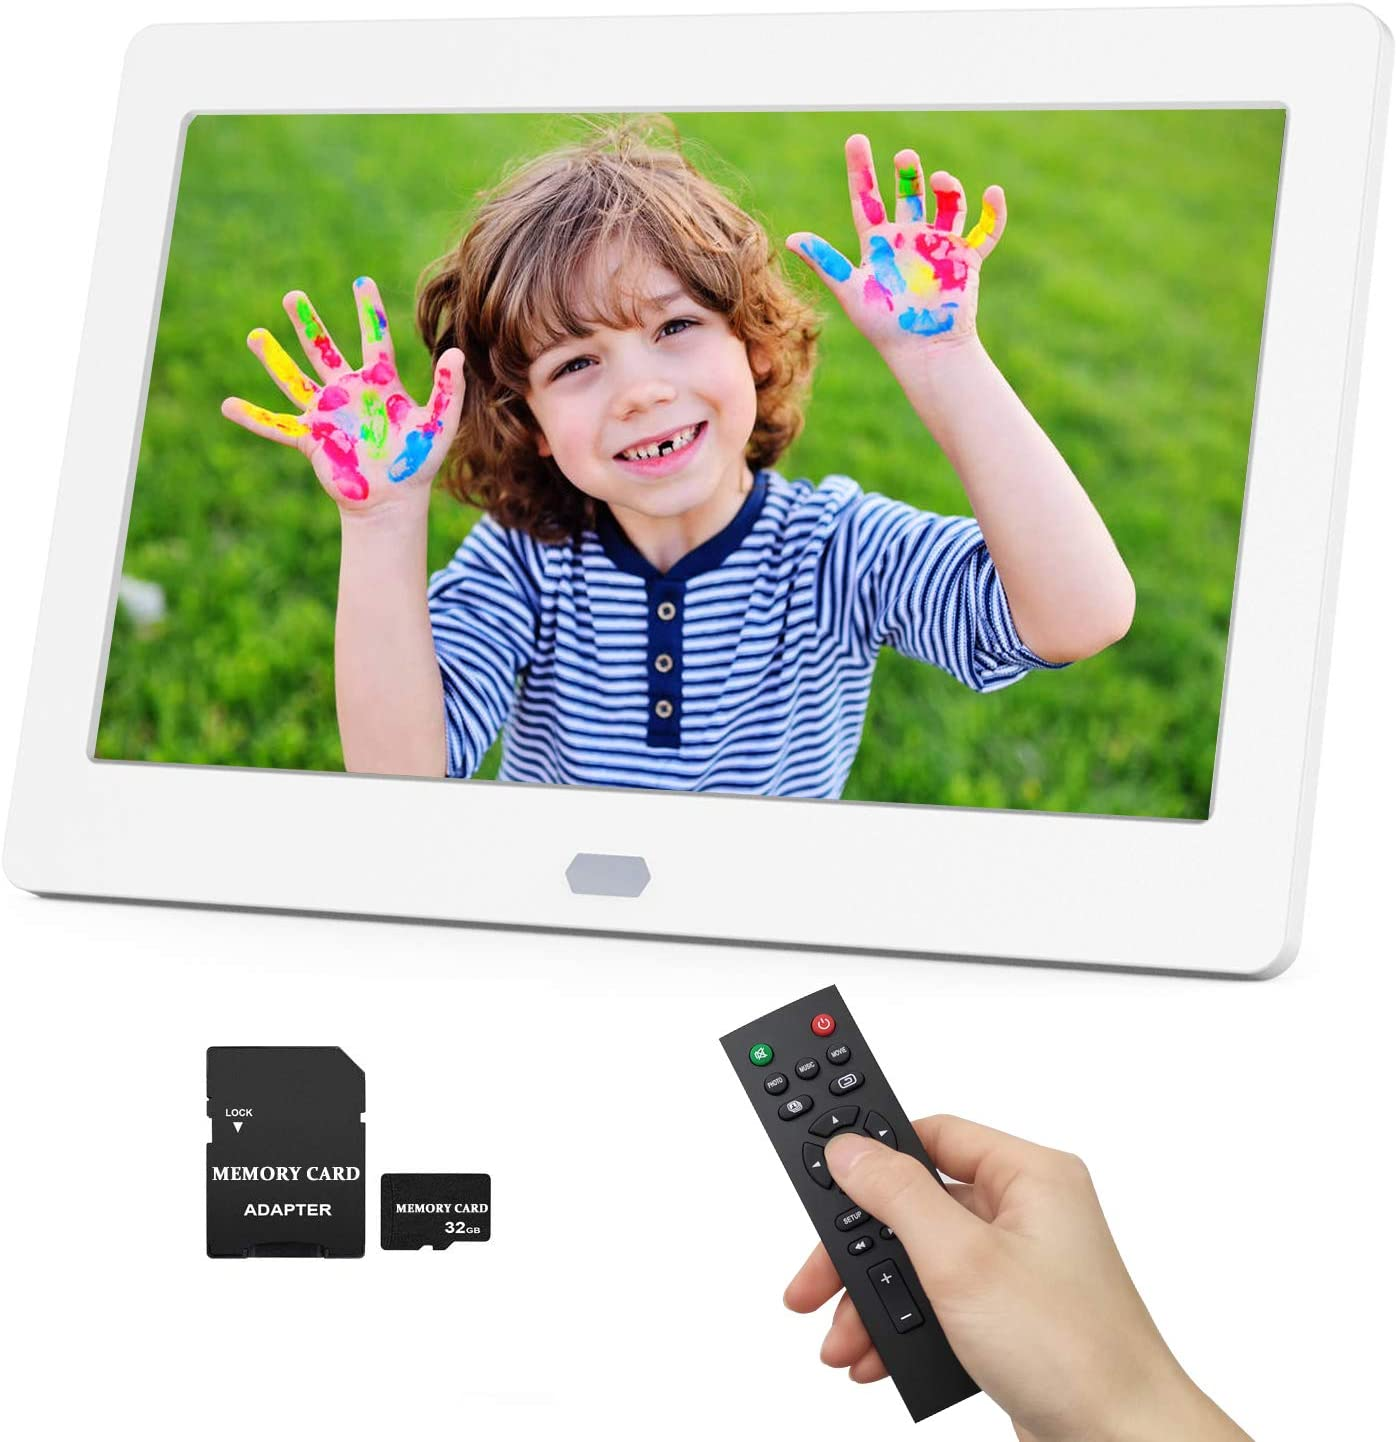 Black Business Picture Frame Electronic Video Music Player Automatic Slideshow for Home Sale 11.6 Inch Digital Photo Frame 1920x1080 HD Advertising Board with Motion Sensor Built-in Speaker